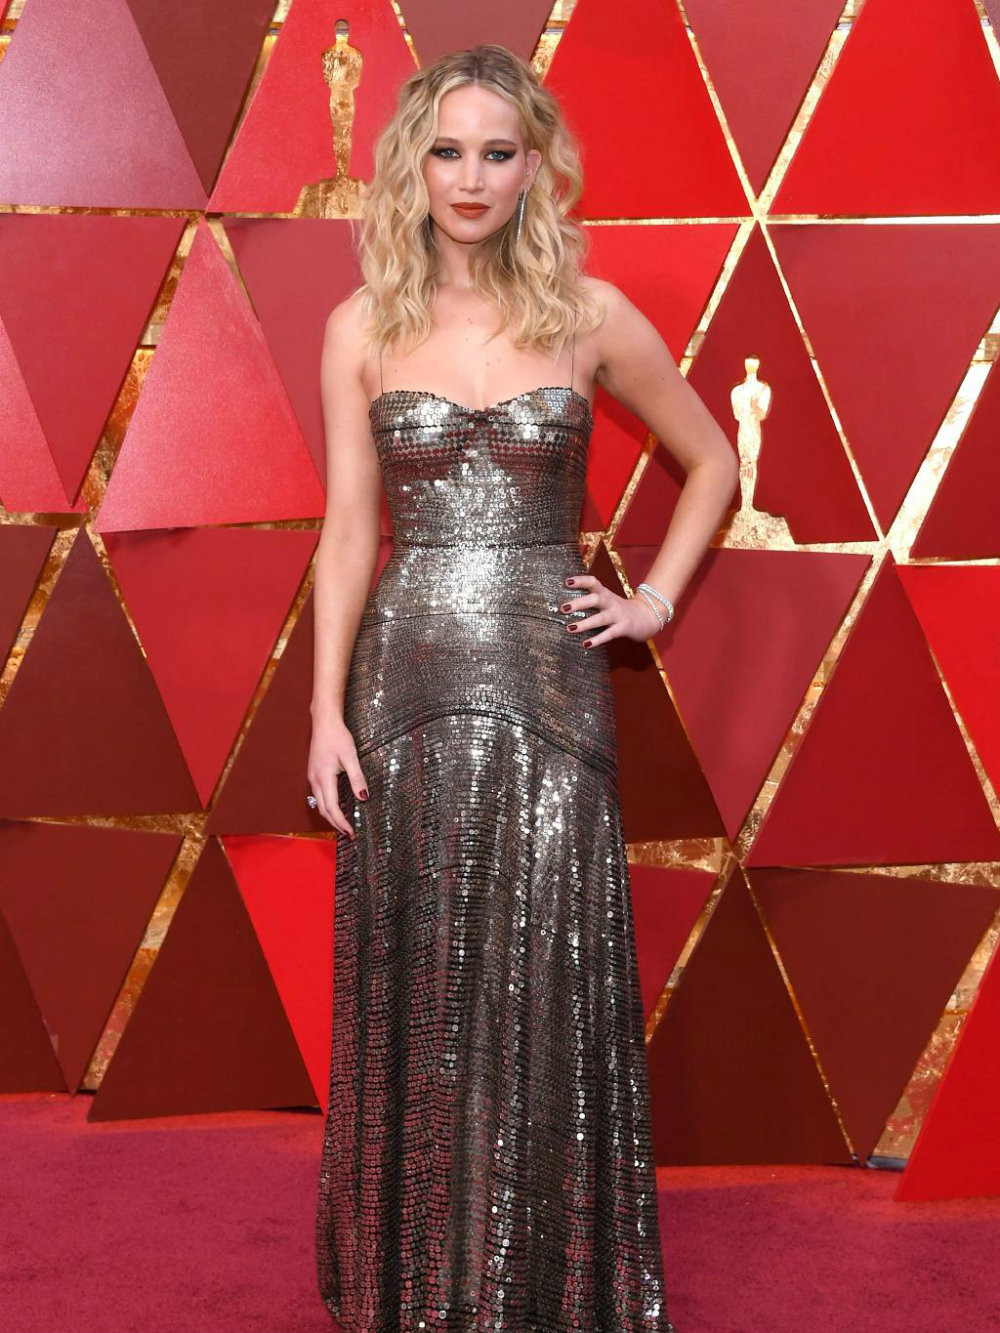 Oscars 2018 Best Dressed Celebrities on the Red Carpet 04 Oscars 2018 Oscars 2018: Best Dressed Celebrities on the Red Carpet Oscars 2018 Best Dressed Celebrities on the Red Carpet 04